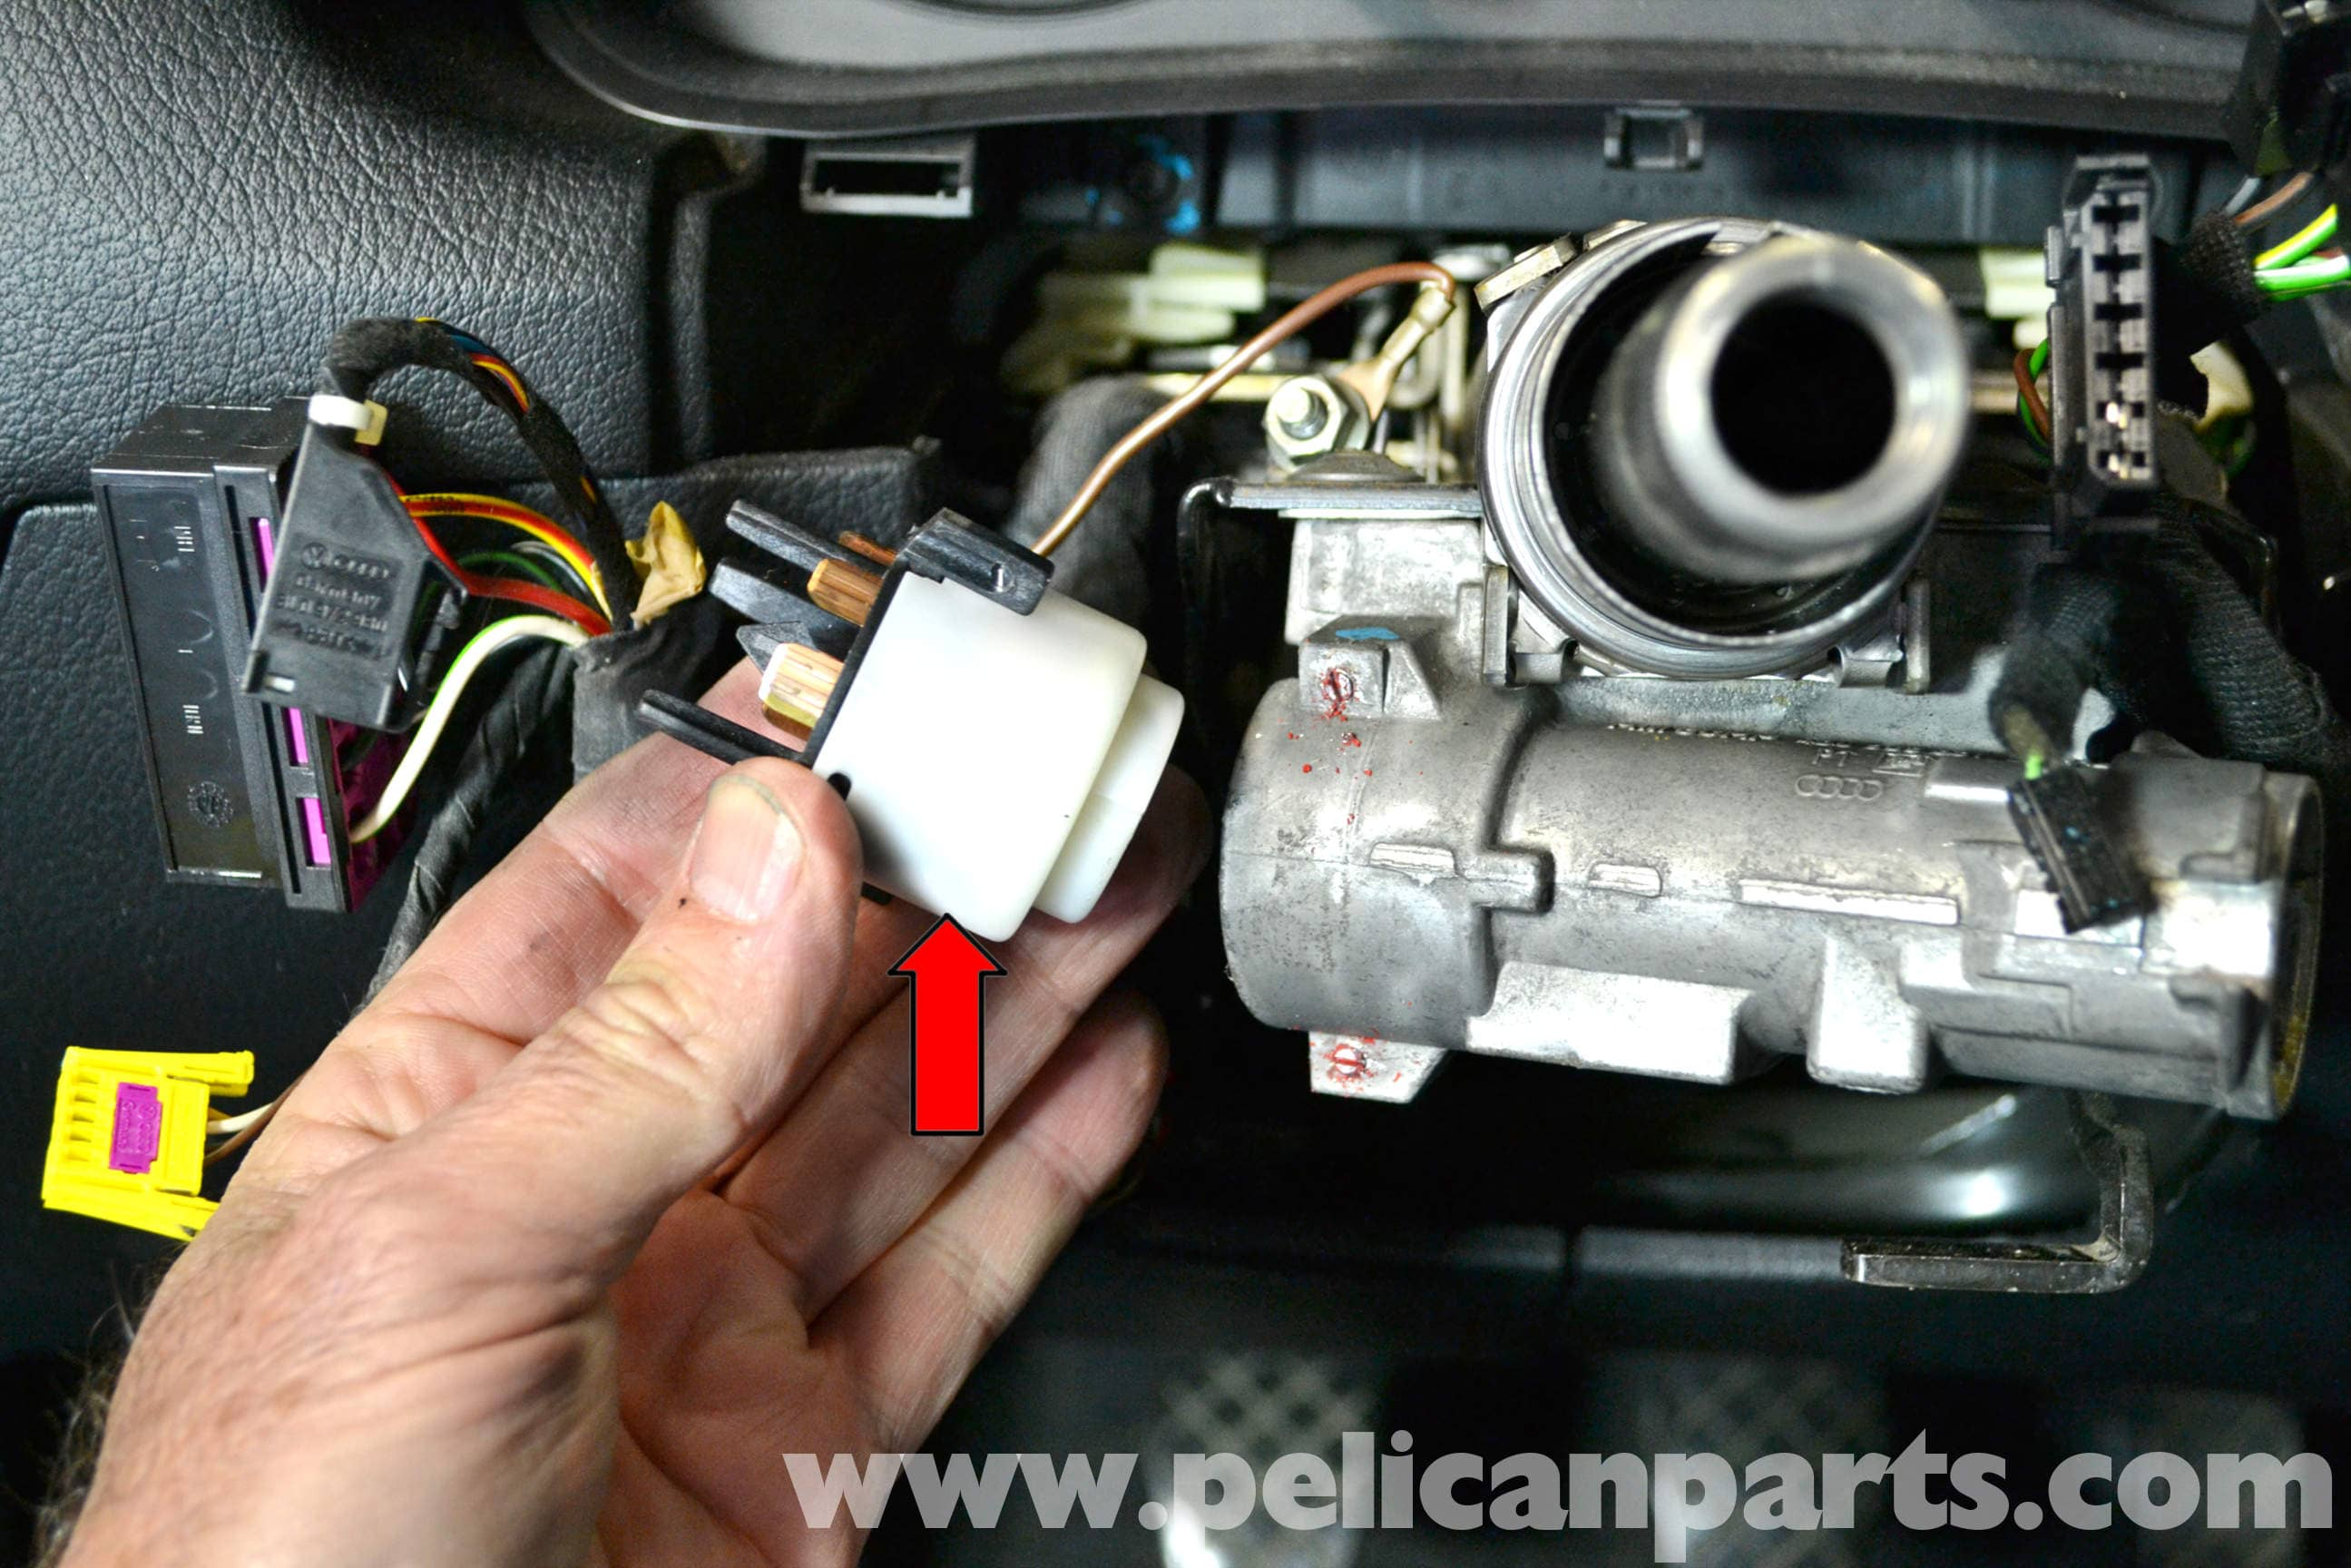 vw polo 9n central locking wiring diagram 1999 ford f150 engine volkswagen golf gti mk iv ignition switch and lock cylinder large image extra